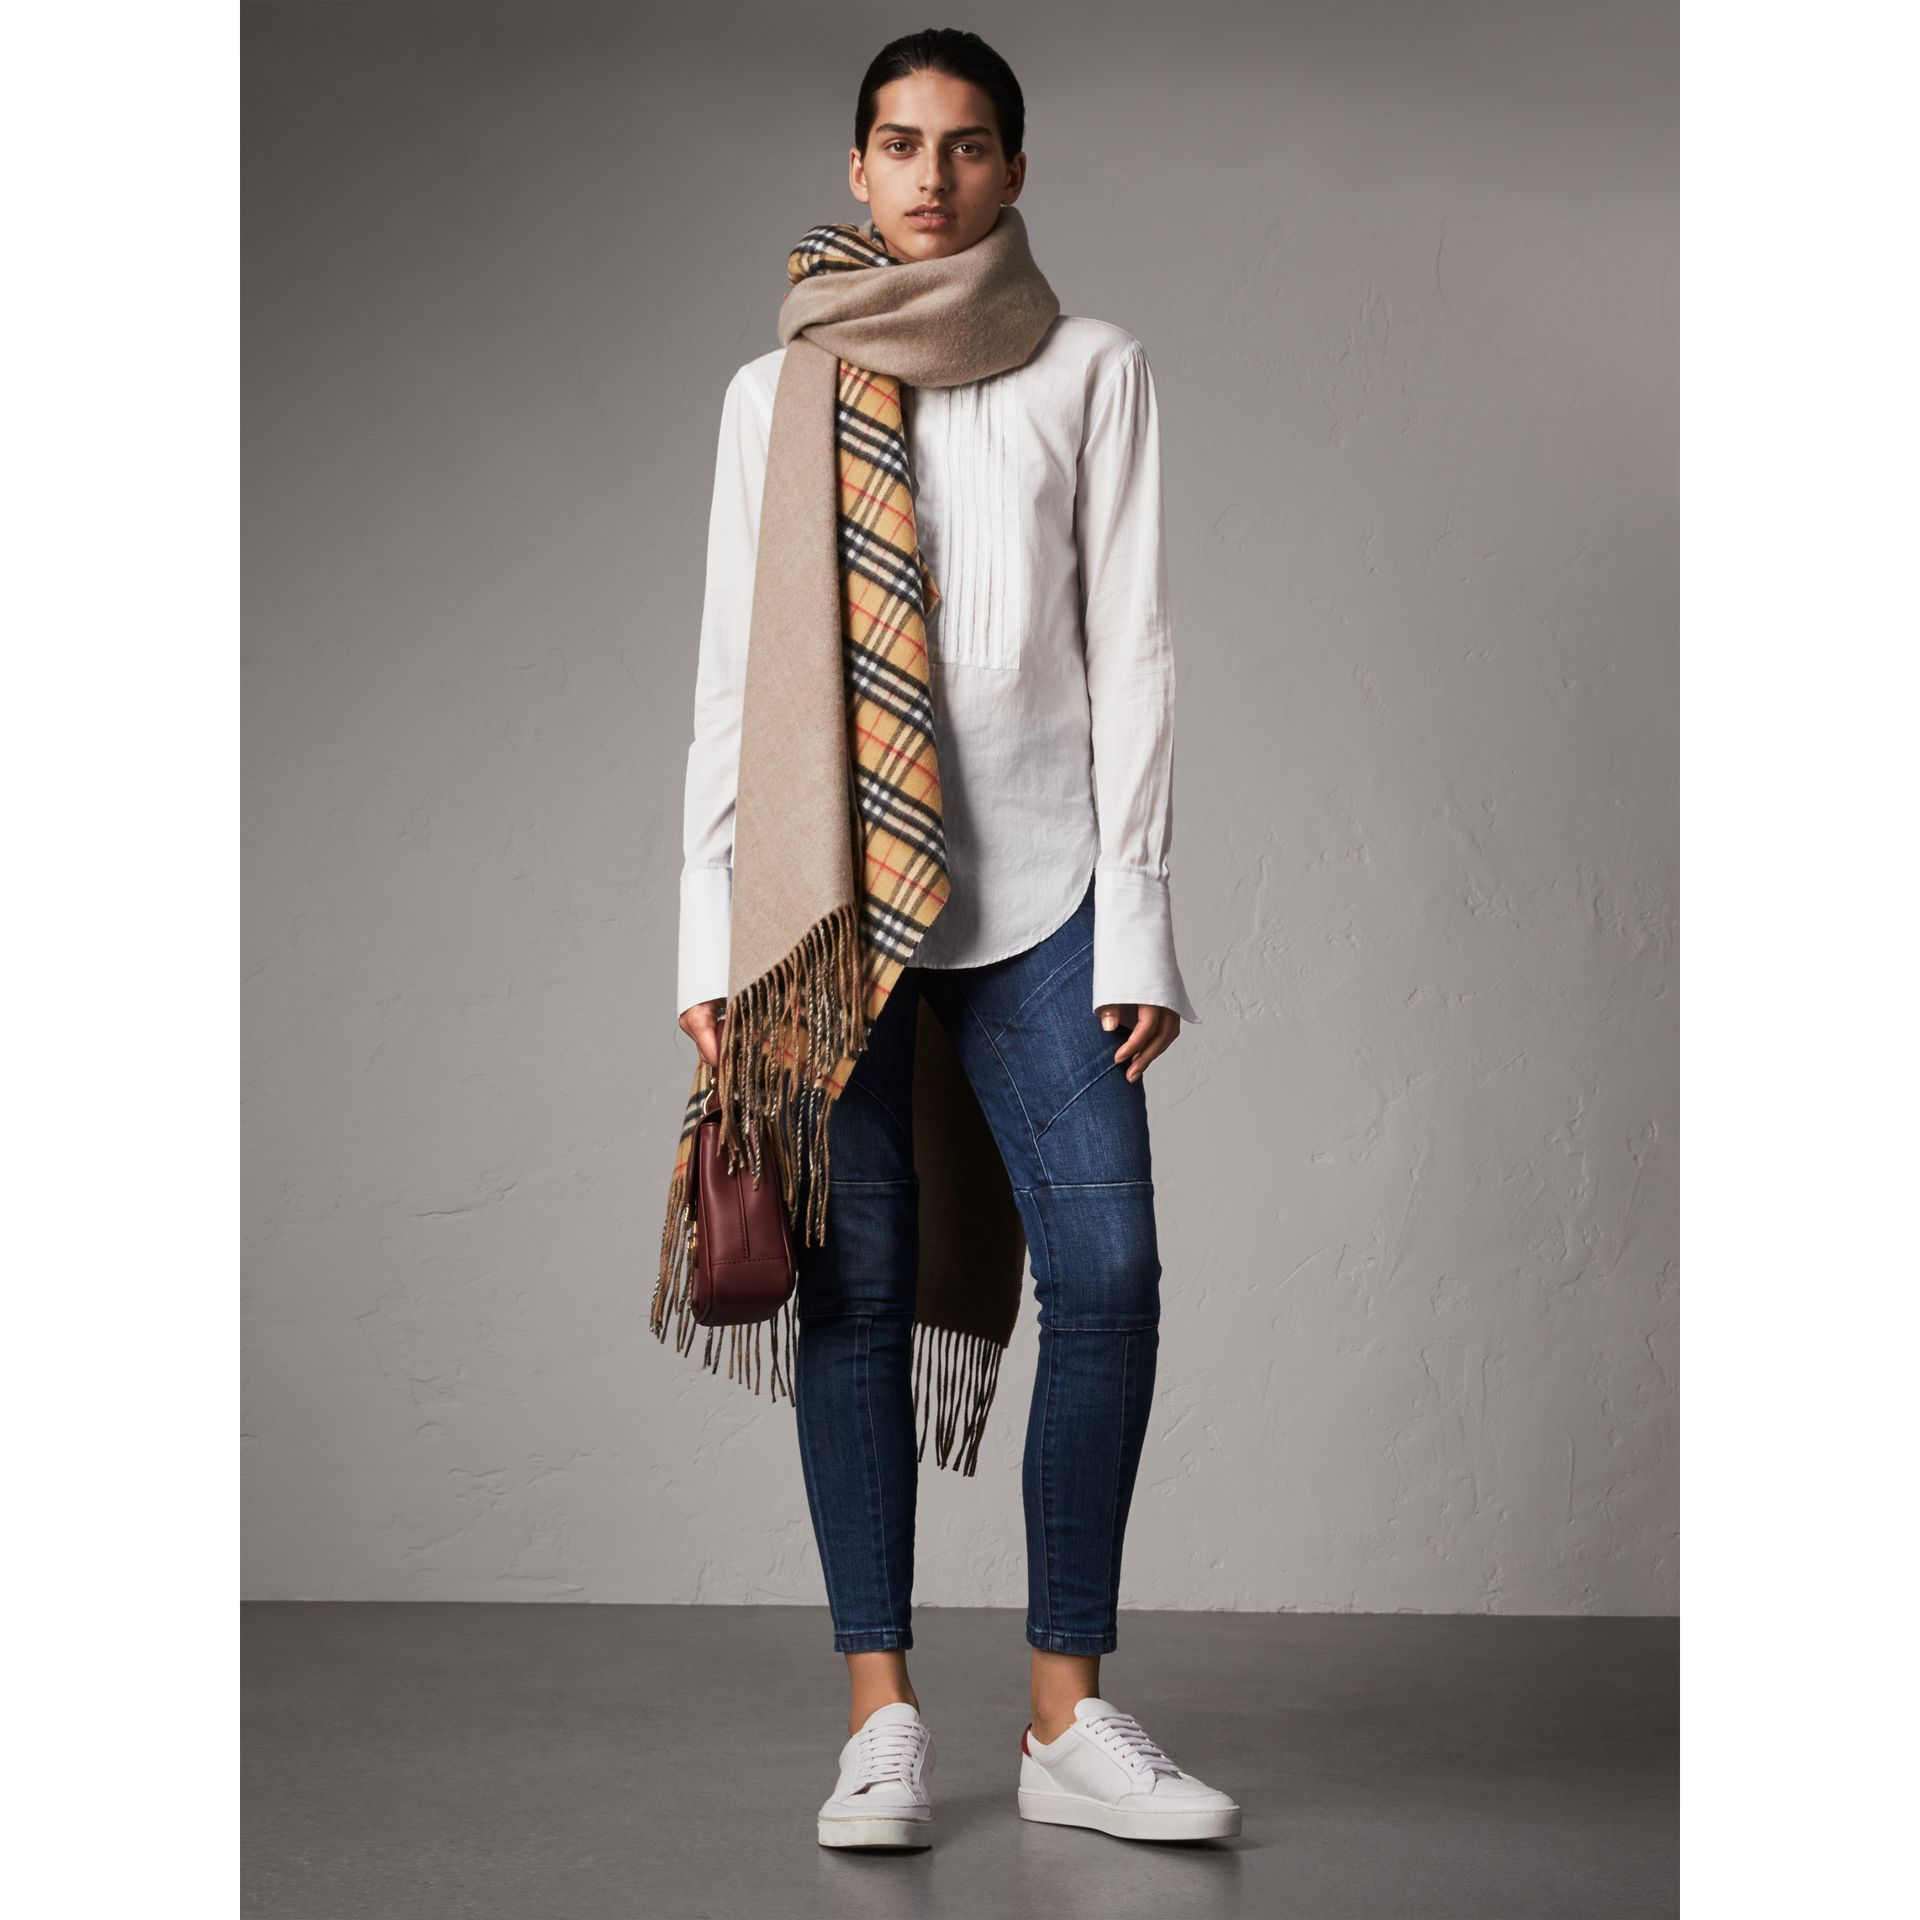 Reversible Vintage Check Cashmere Wool Poncho in Sandstone - Women | Burberry - gallery image 4